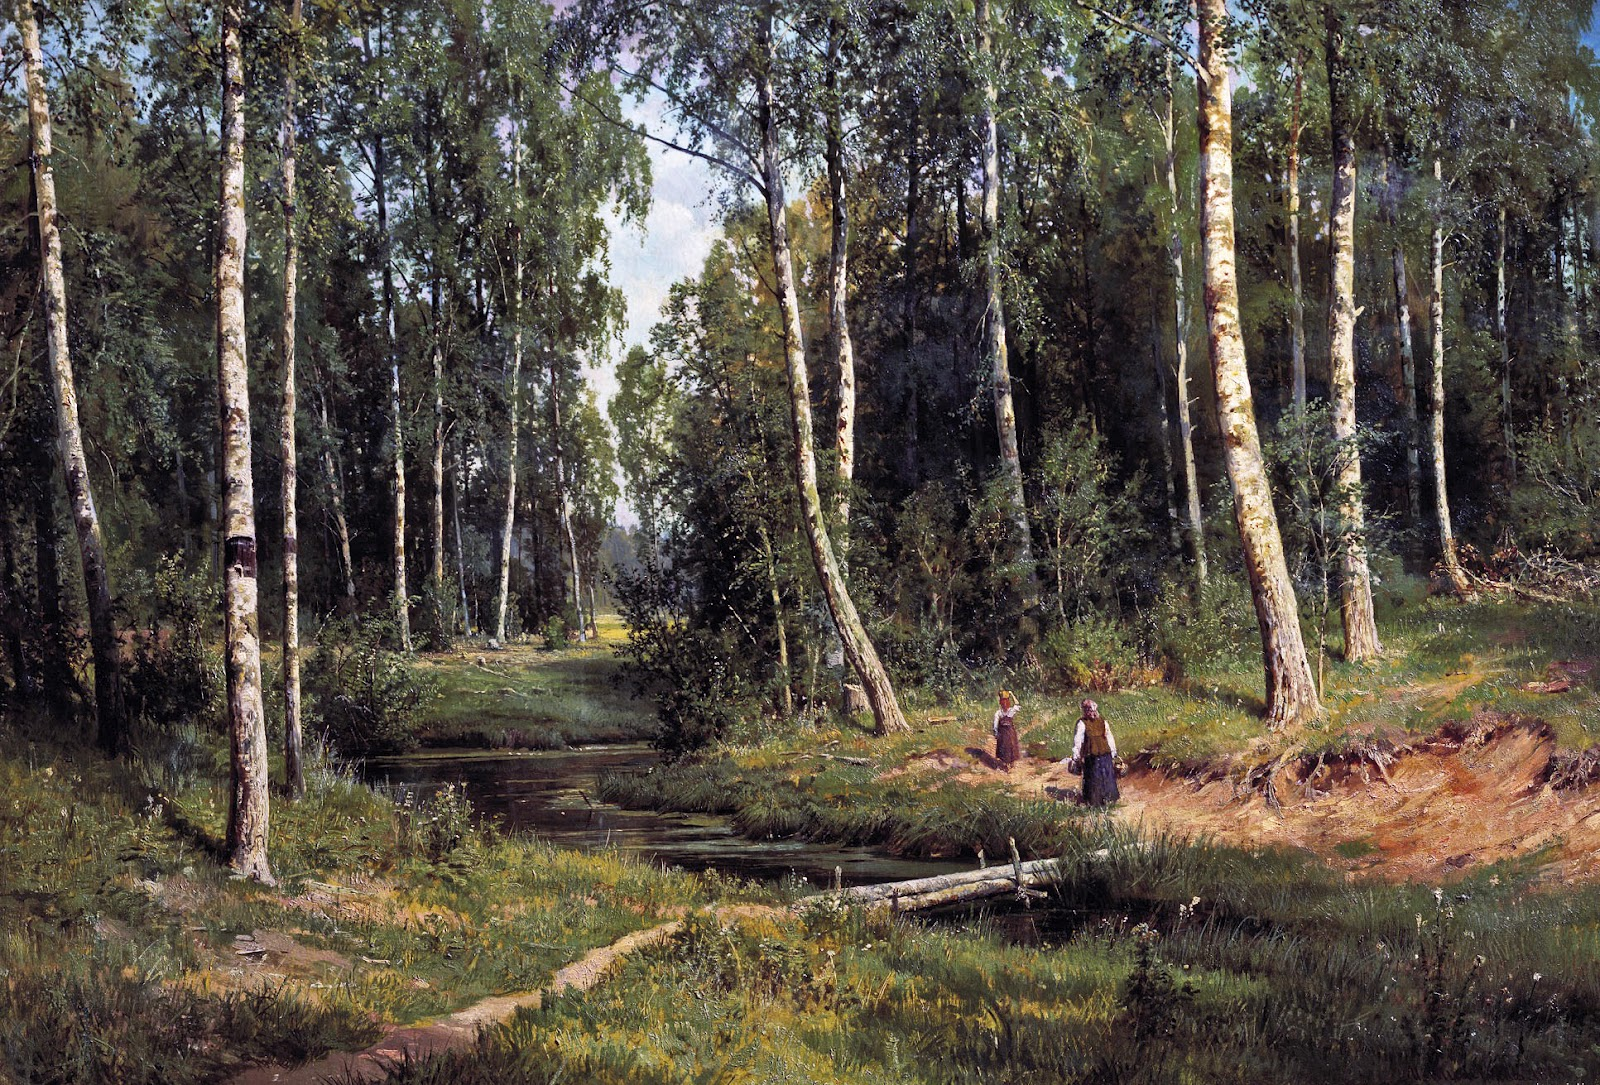 The Glory of Russian Painting: Ivan Shishkin: 19thcenturyrusspaint.blogspot.co.at/2012/08/ivan-shishkin.html